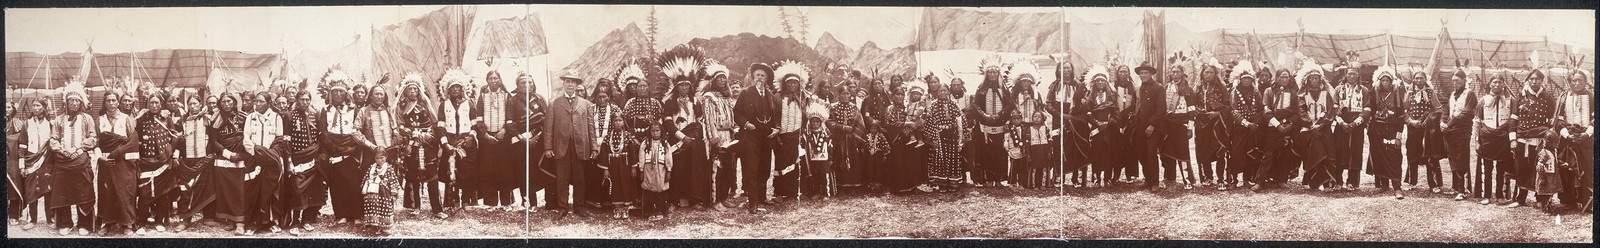 [Group of American Indians]